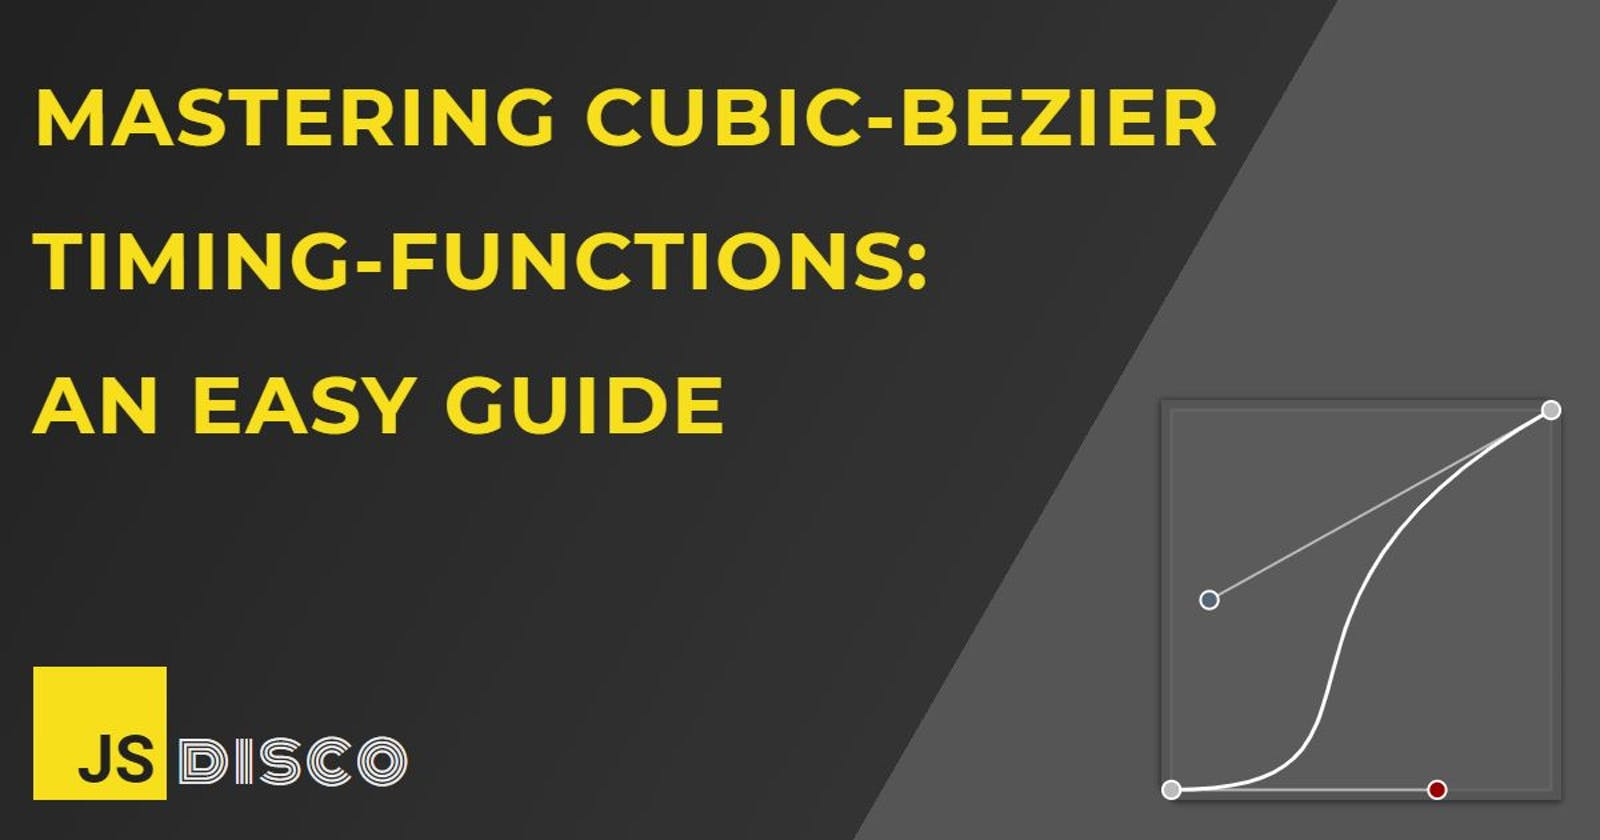 Mastering cubic-bezier timing-functions: An easy guide